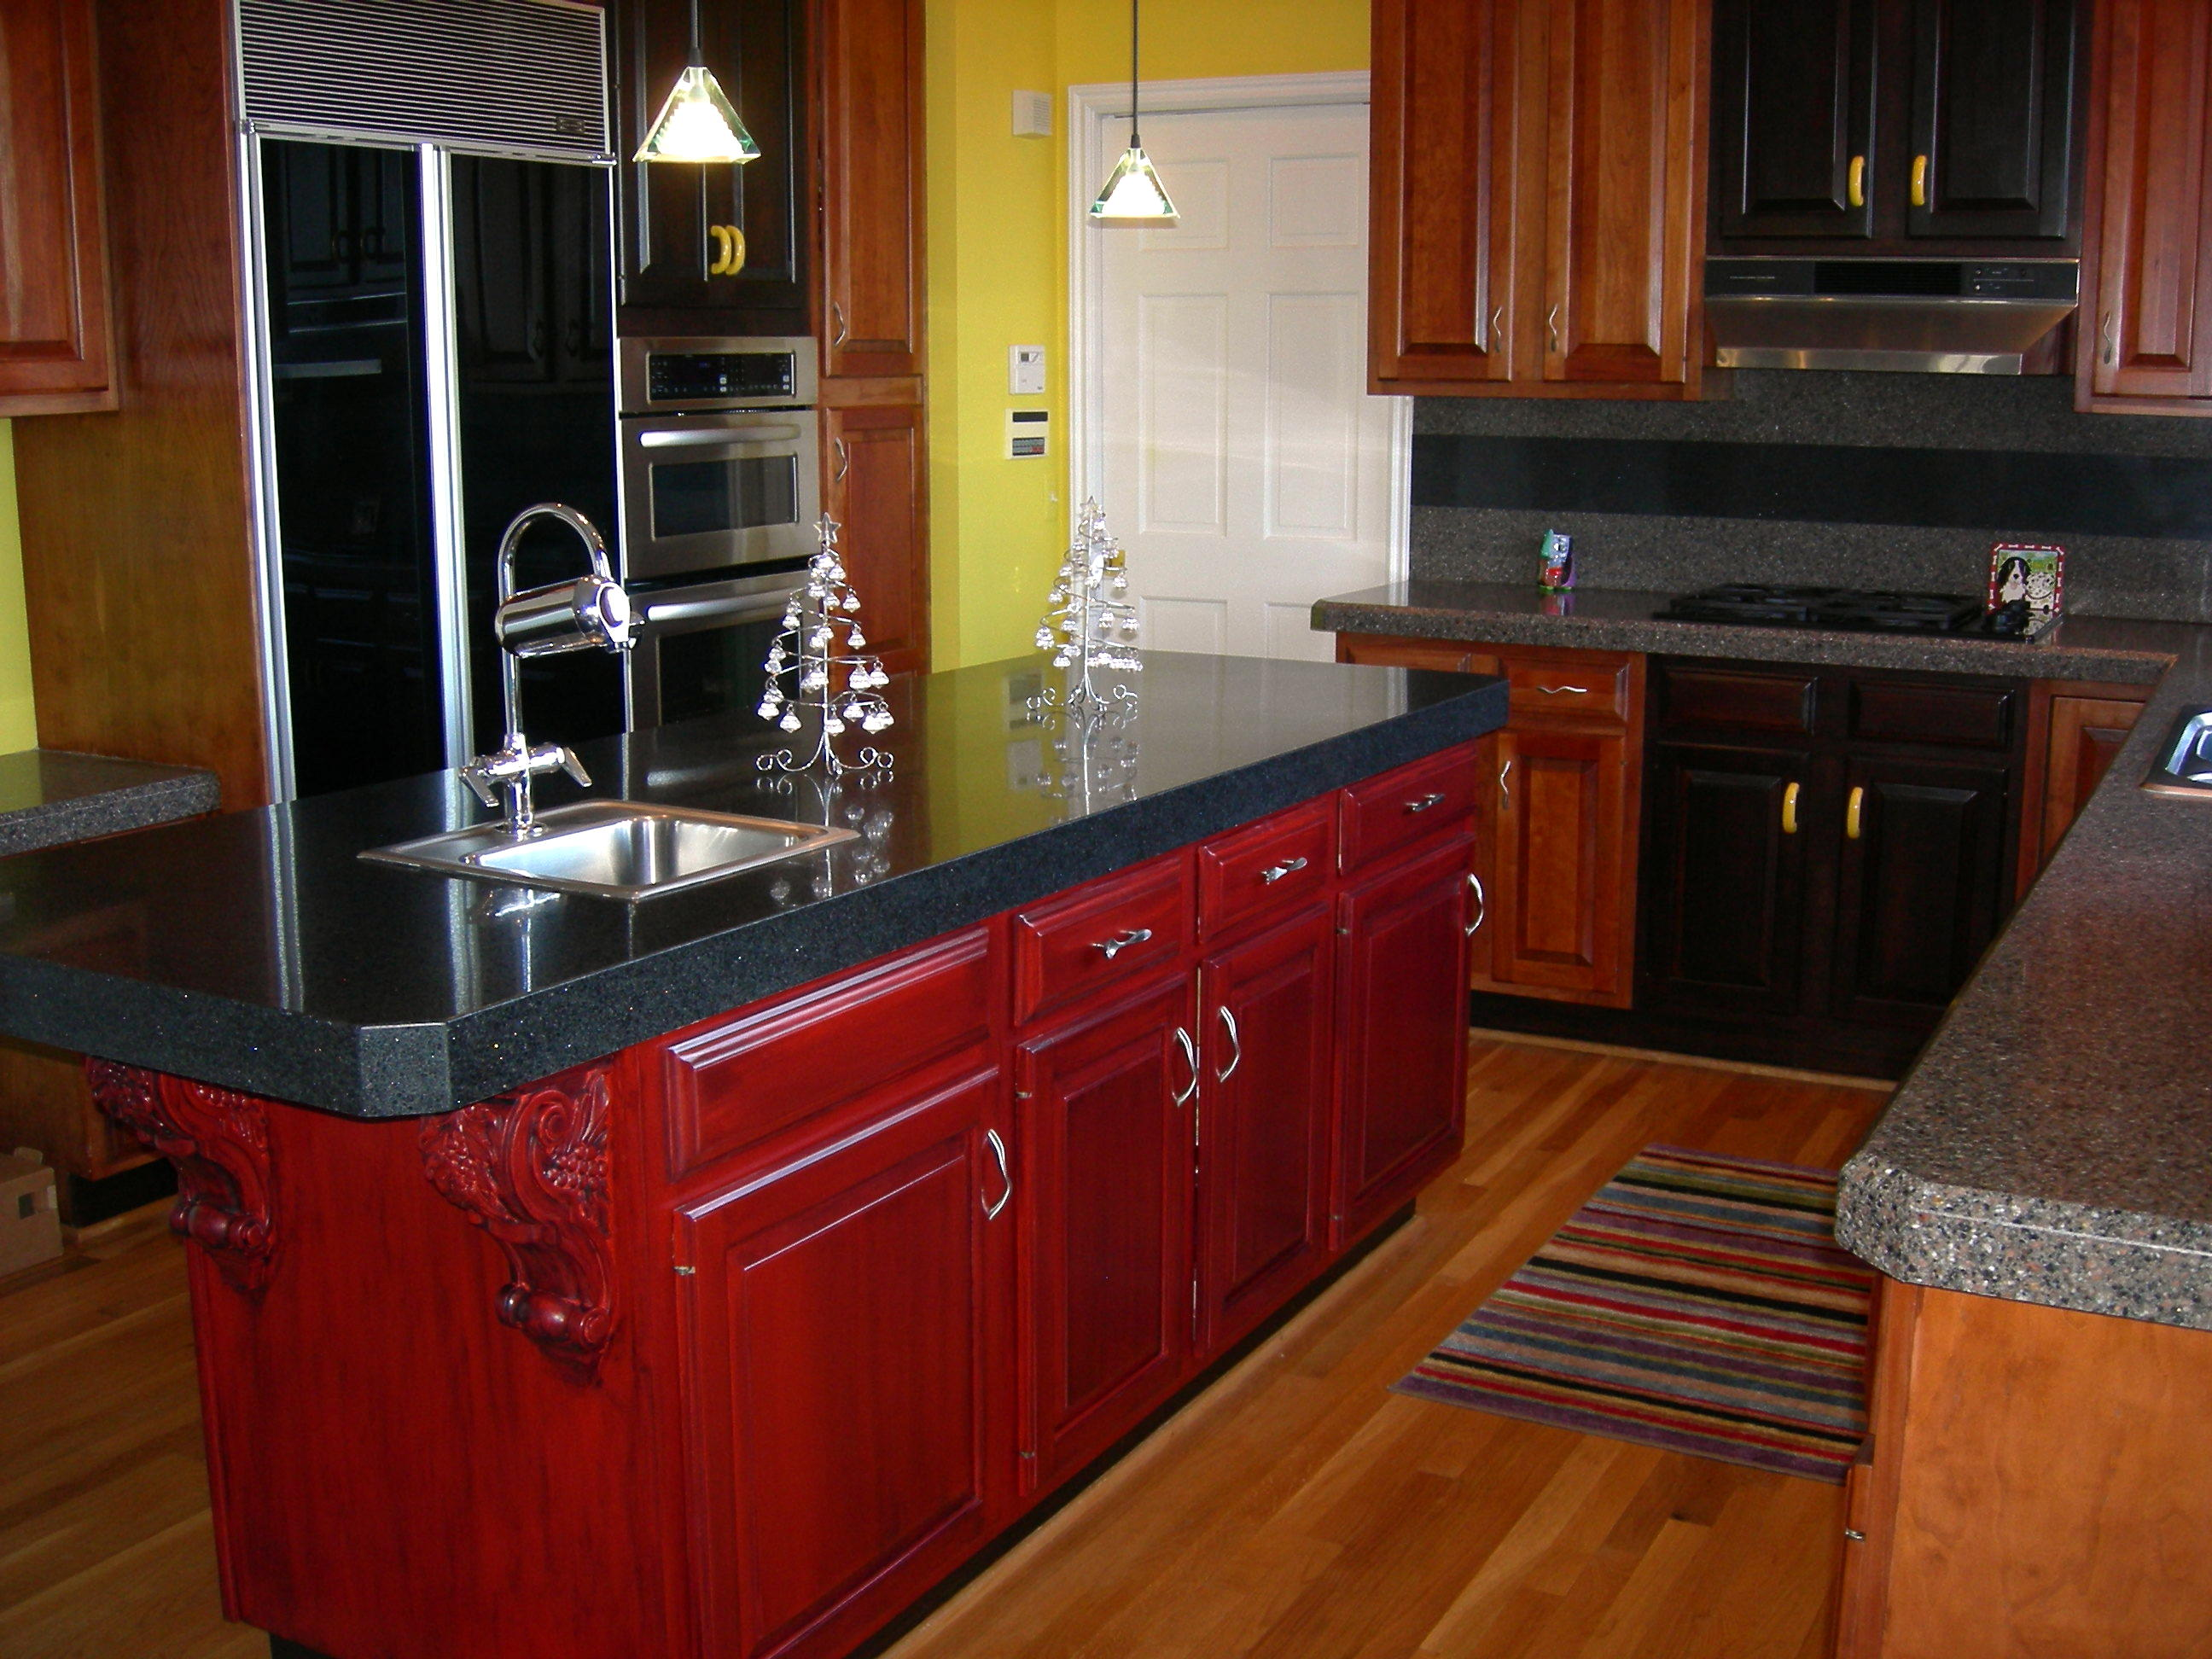 red kitchen Cabinet Refacing with black countertop plus sink with silver kitchen faucet plus chandelier